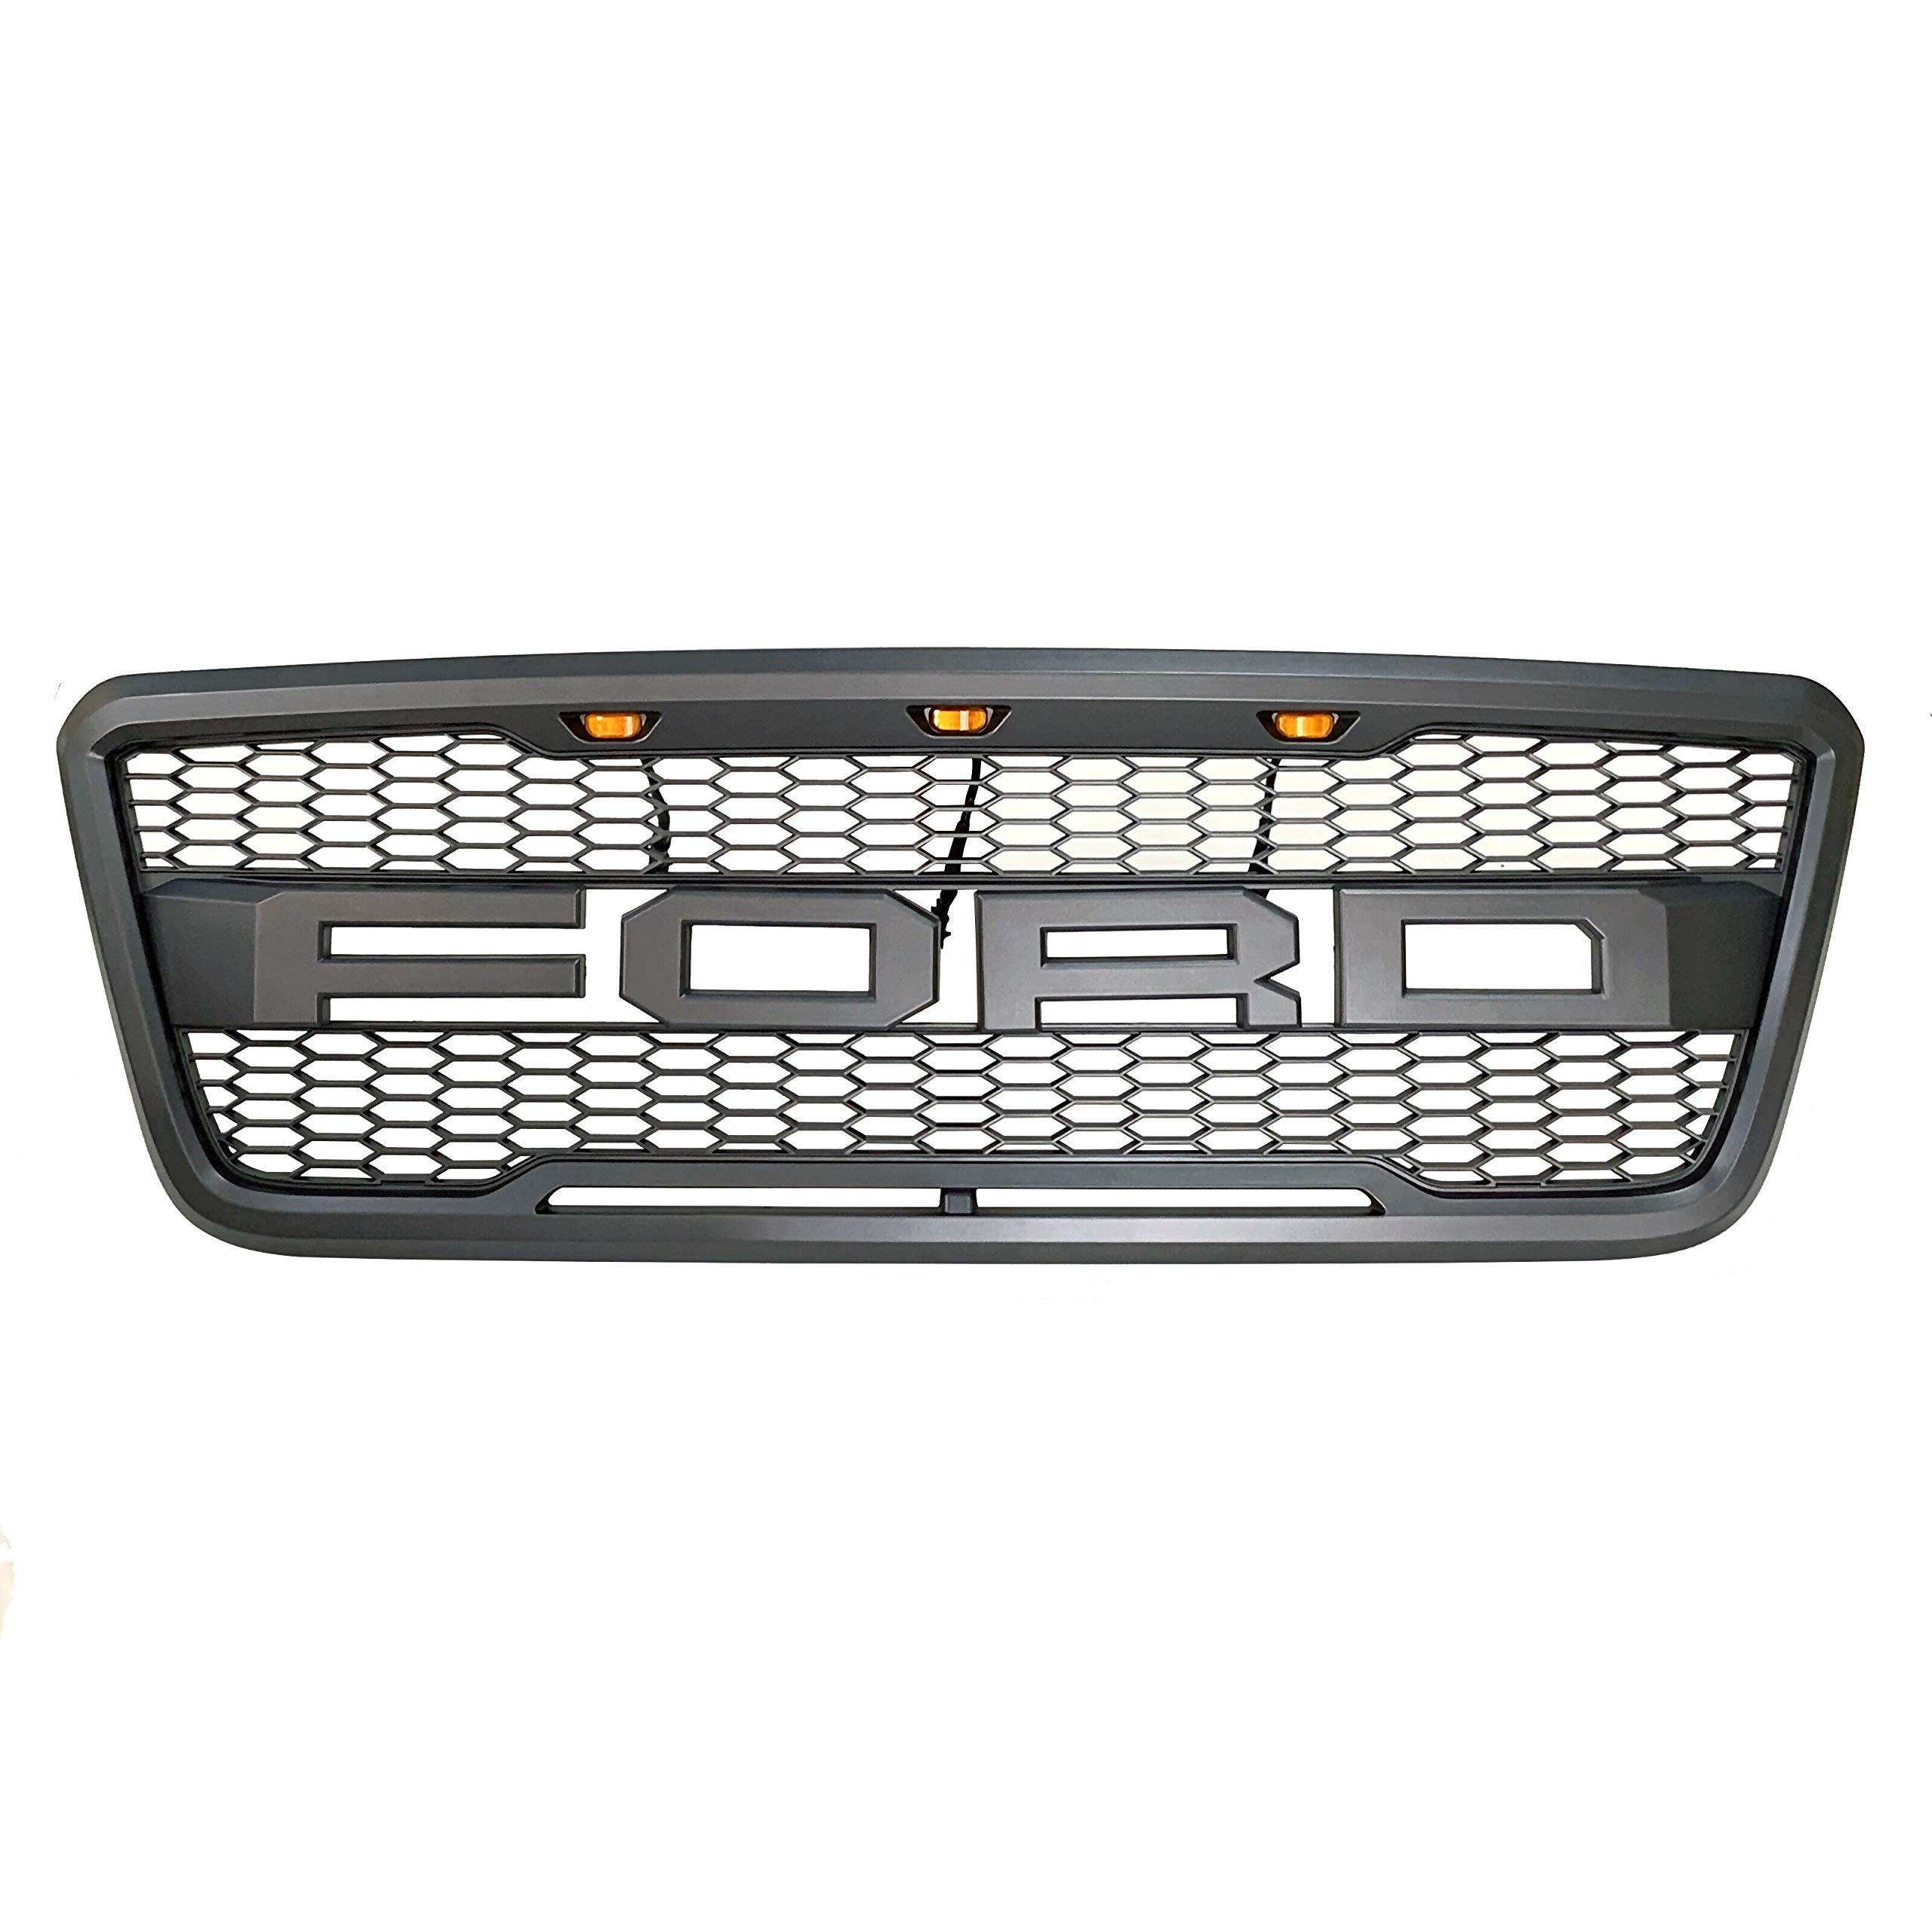 Front Grille Fits 2004-2008 FORD F150 Raptor Style Grill Kits With Amber LED Light and F&R Letter (Grey)